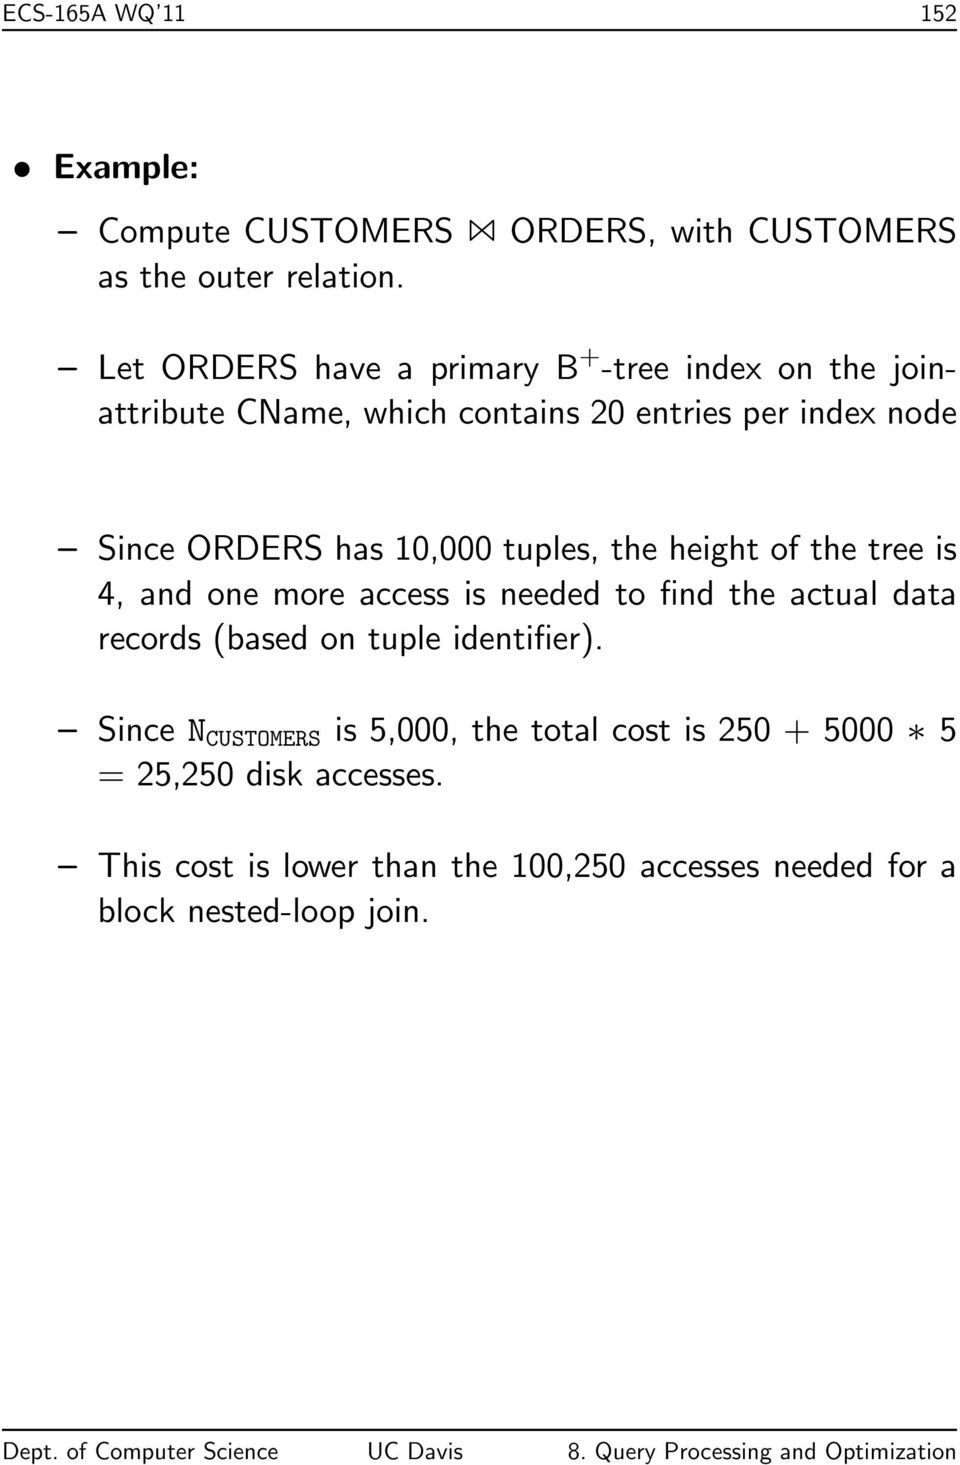 10,000 tuples, the height of the tree is 4, and one more access is needed to find the actual data records (based on tuple